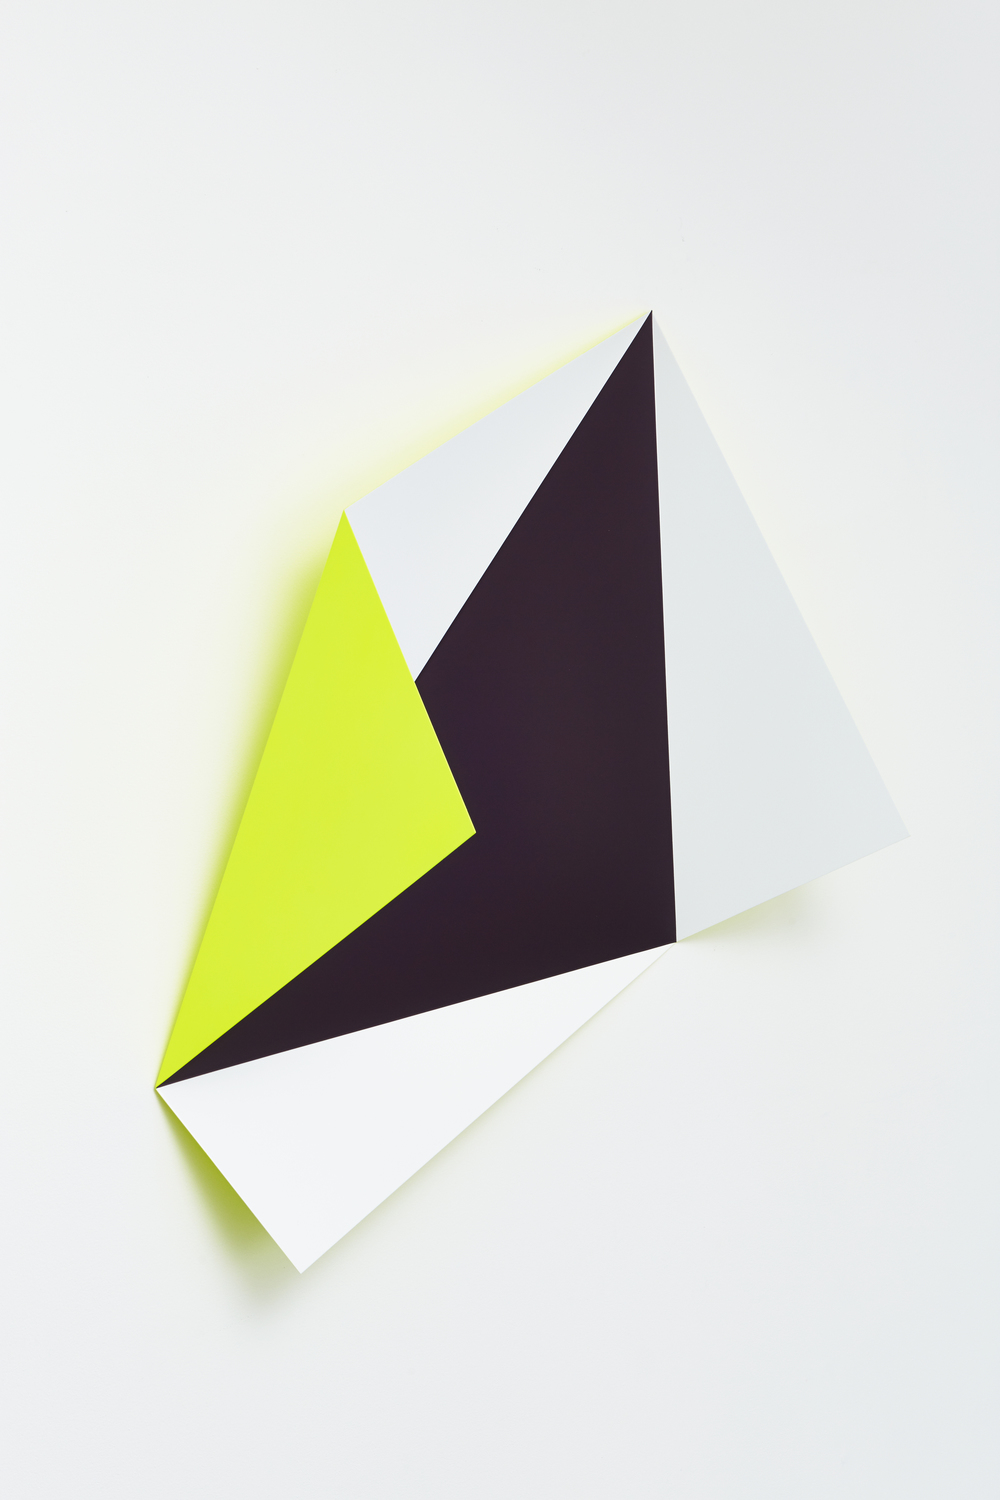 Rana Begum, No. 489 L fold, 2014, paint on mild steel, 57 1/2 x 47 x 19 inches (146 119 x 48 cm). Courtesy the artist and Jhaveri Contemporary. Photograph: Philip White